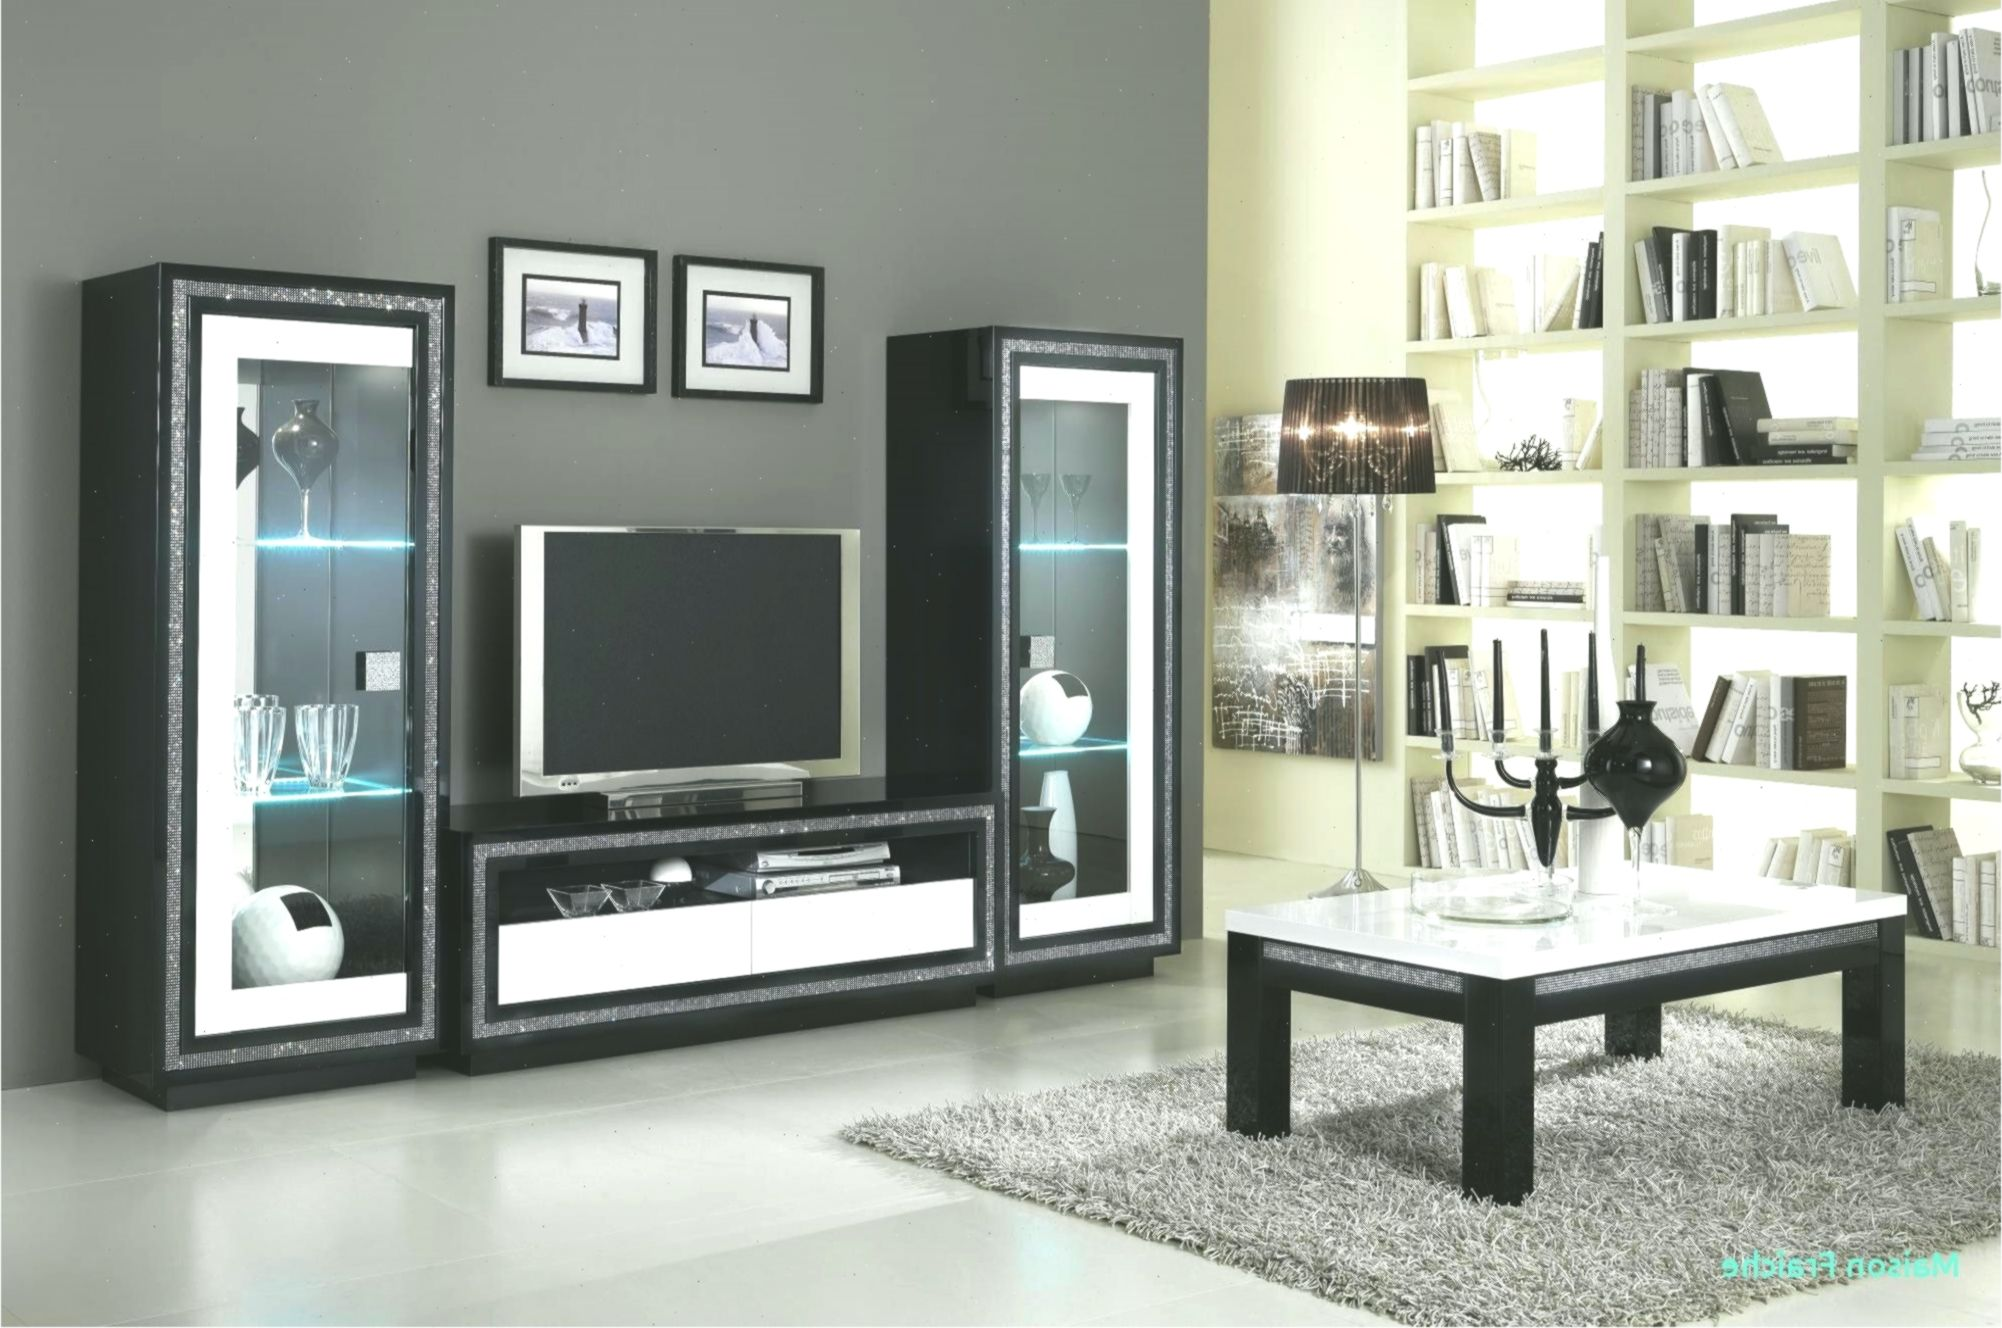 35 Luxe Meuble Tv Rustique Suggestions Meuble Tv A Vendre Meuble Tv Auchan Angletvcabinet Auchan Homedecor Livingroom L Home Tv Cabinets Home Decor